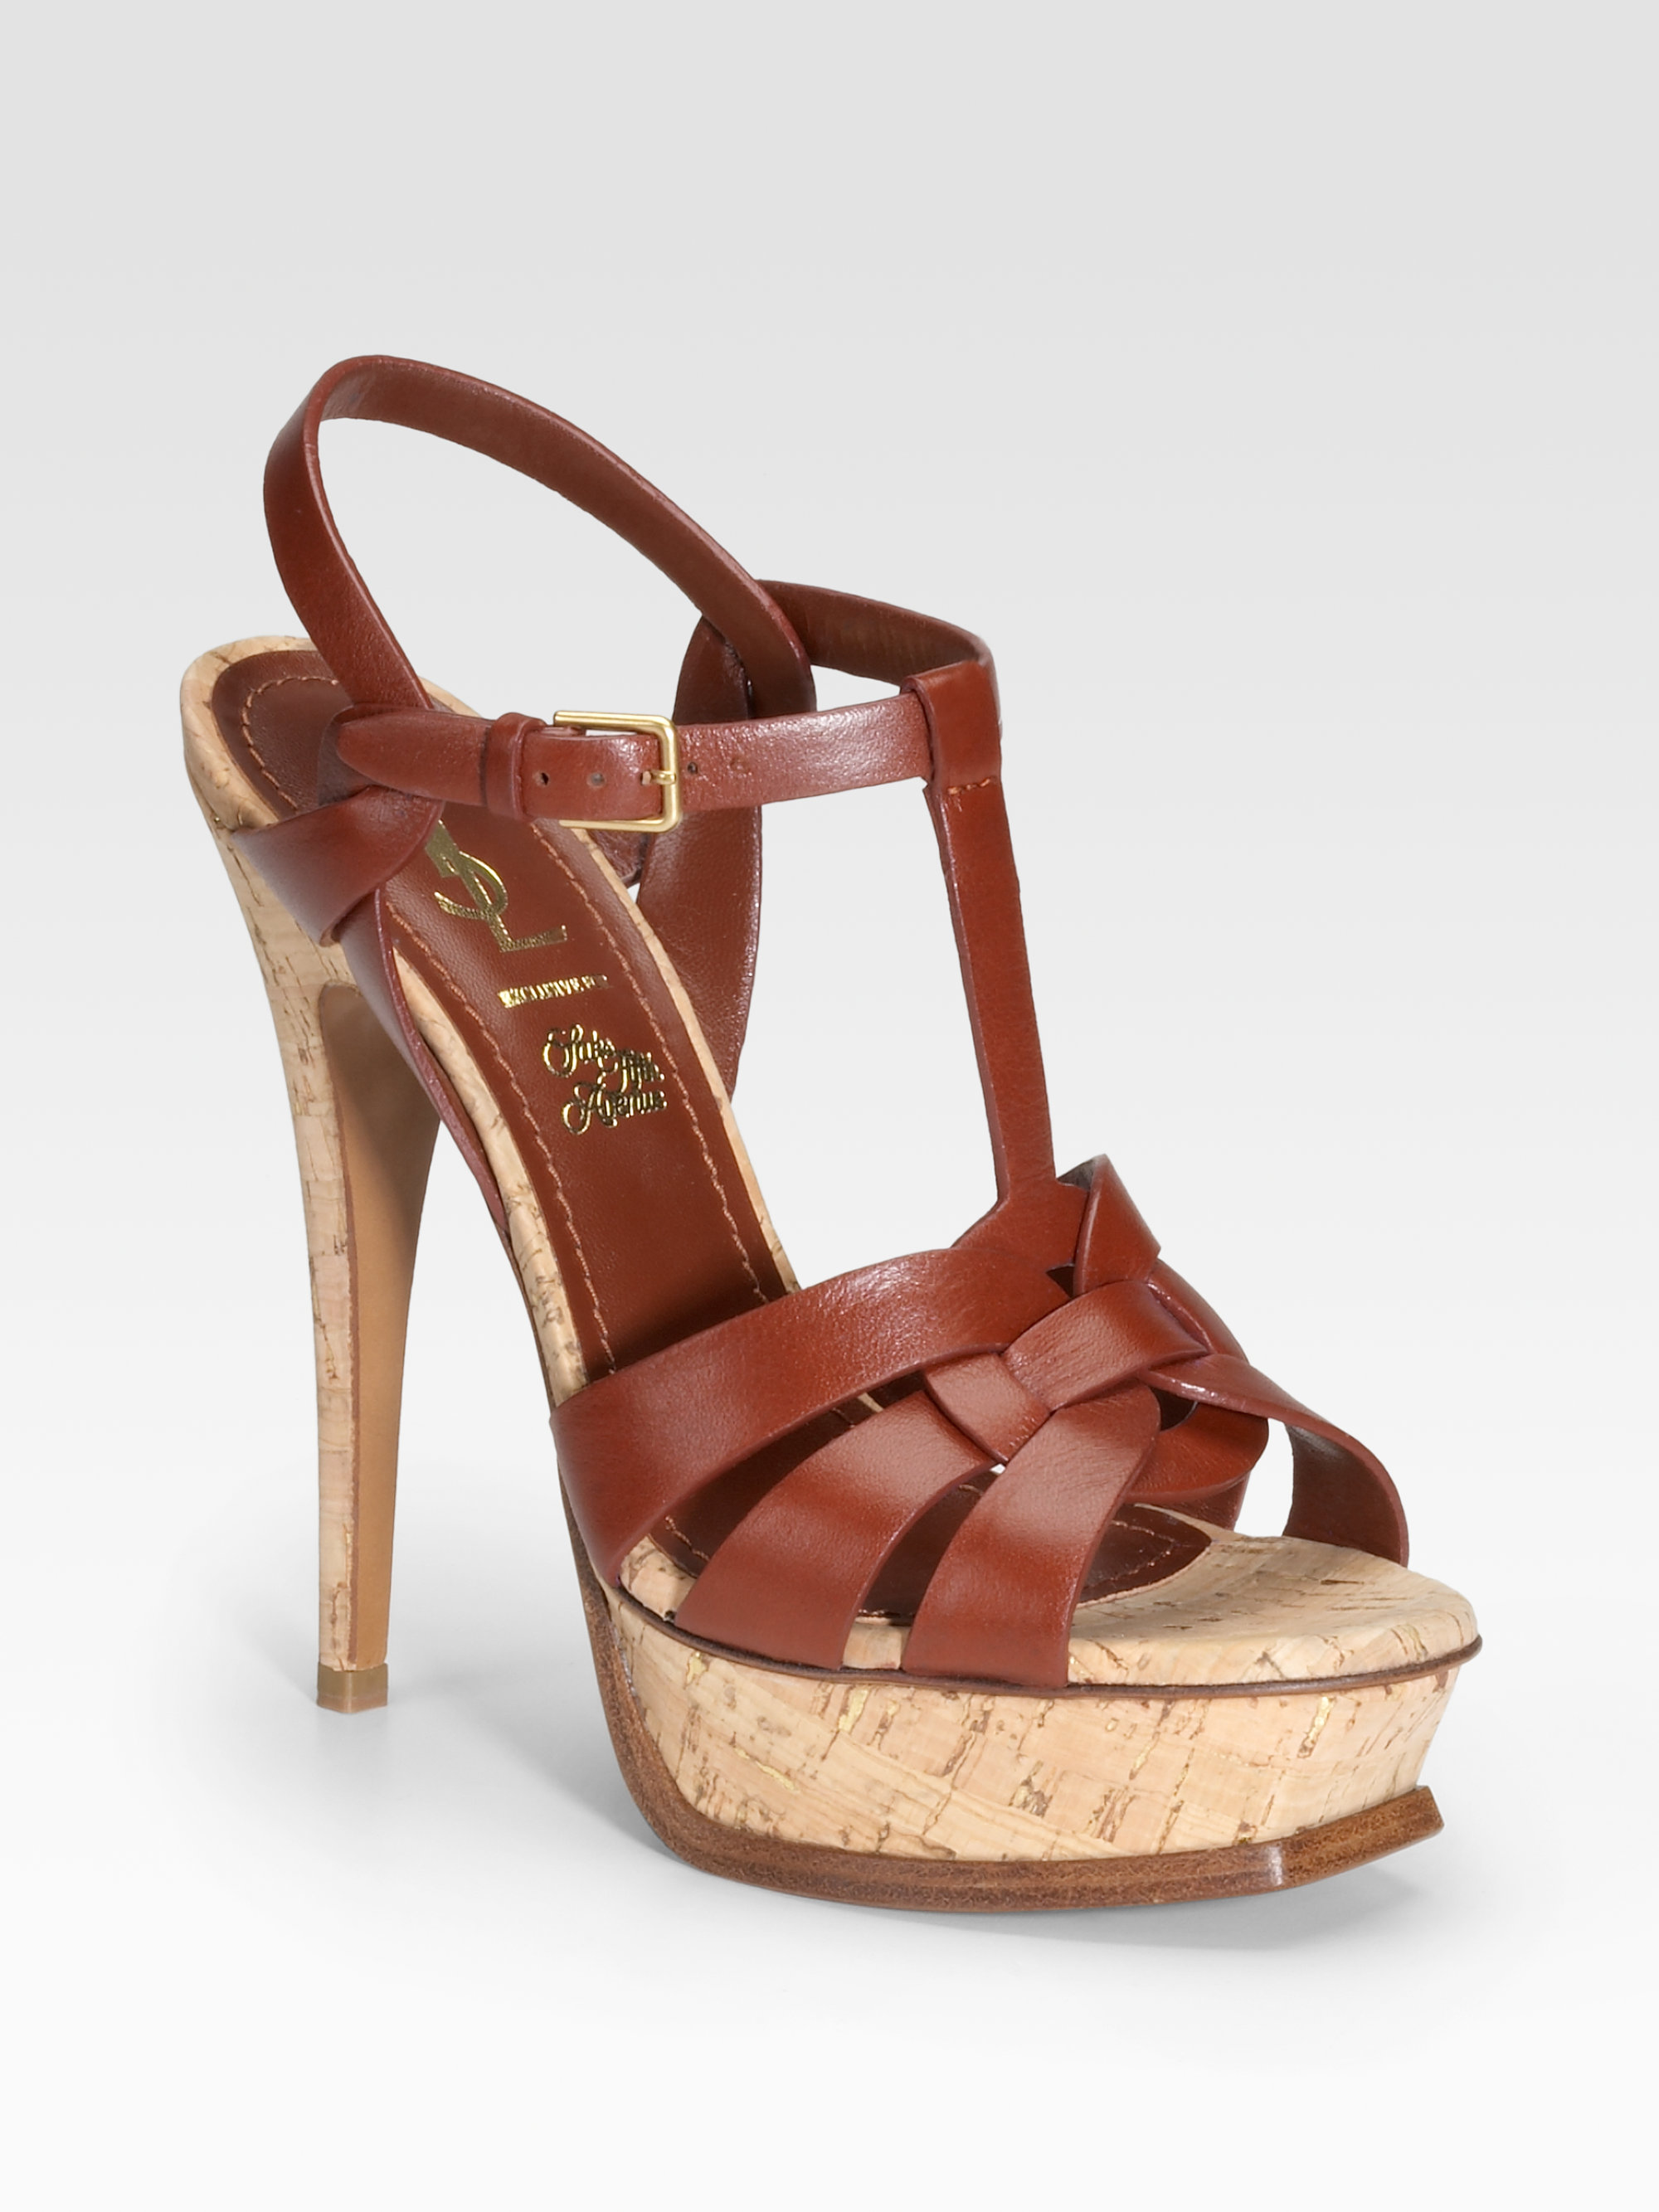 48c11bd3ce2 Lyst - Saint Laurent Tribute Cork Platform Sandals in Brown